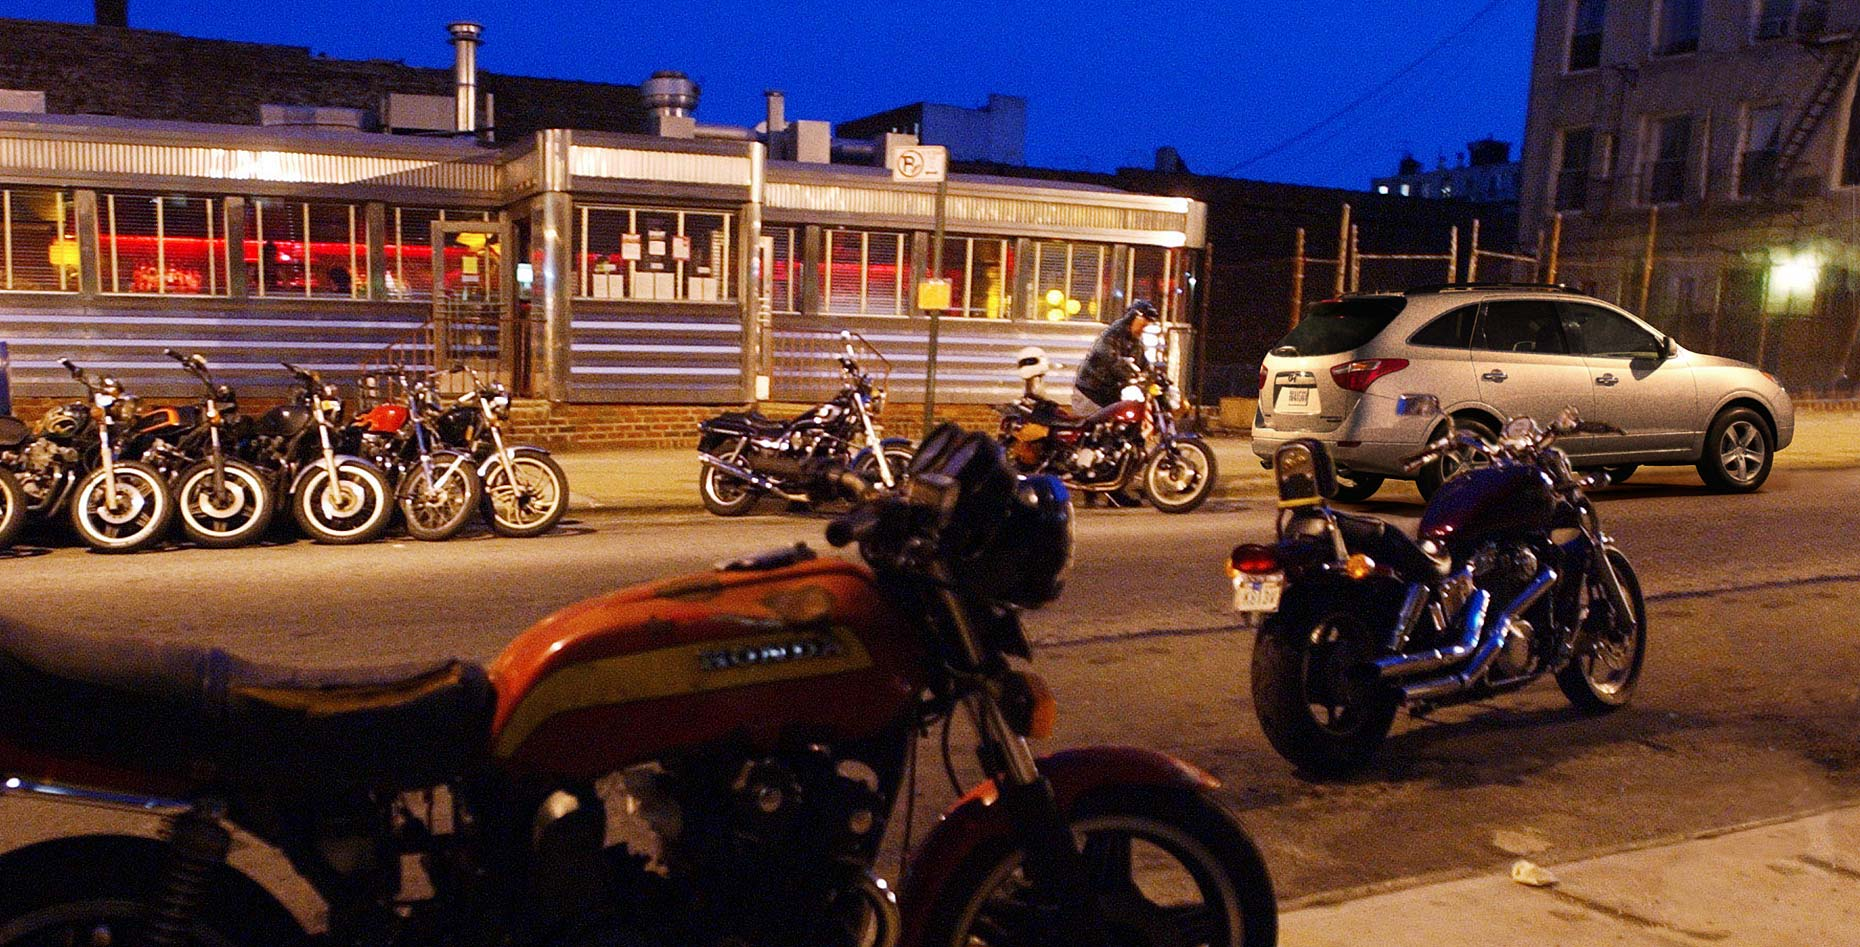 4-MotorCycleDiner_01b_Final